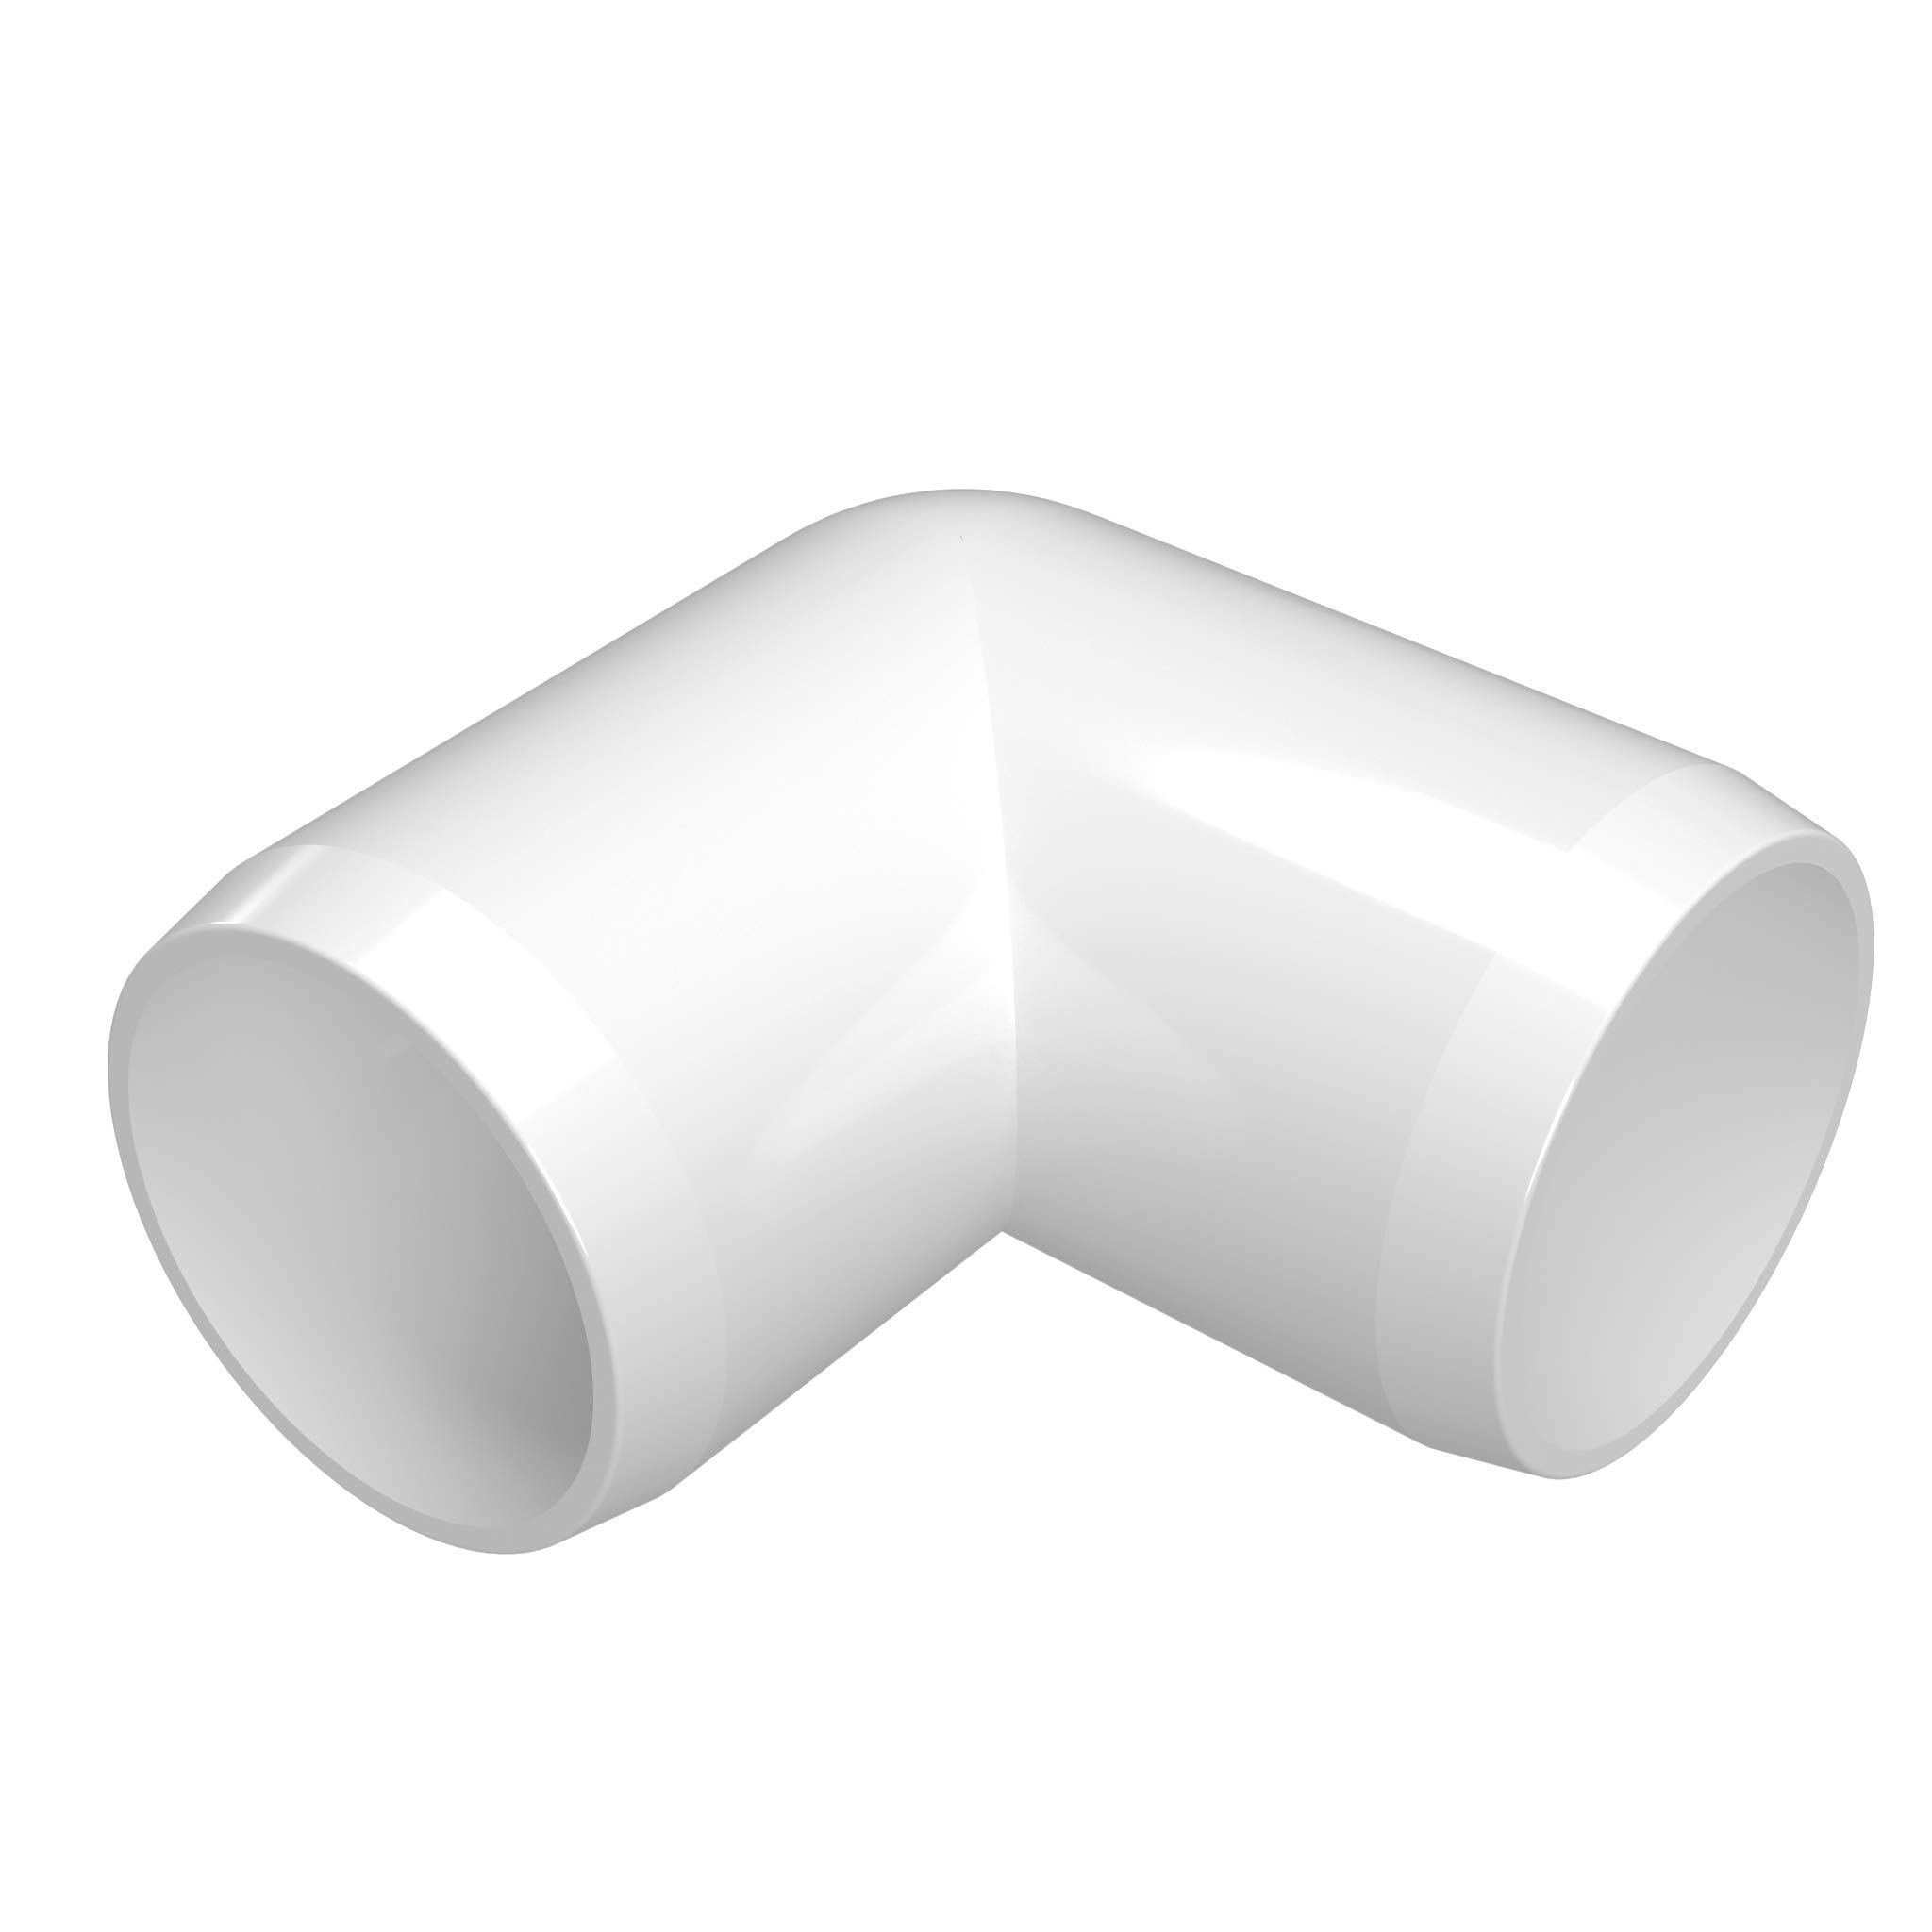 FORMUFIT F01290E-WH-10 90 degree Elbow PVC Fitting, Furniture Grade, 1/2'' Size, White (Pack of 10)